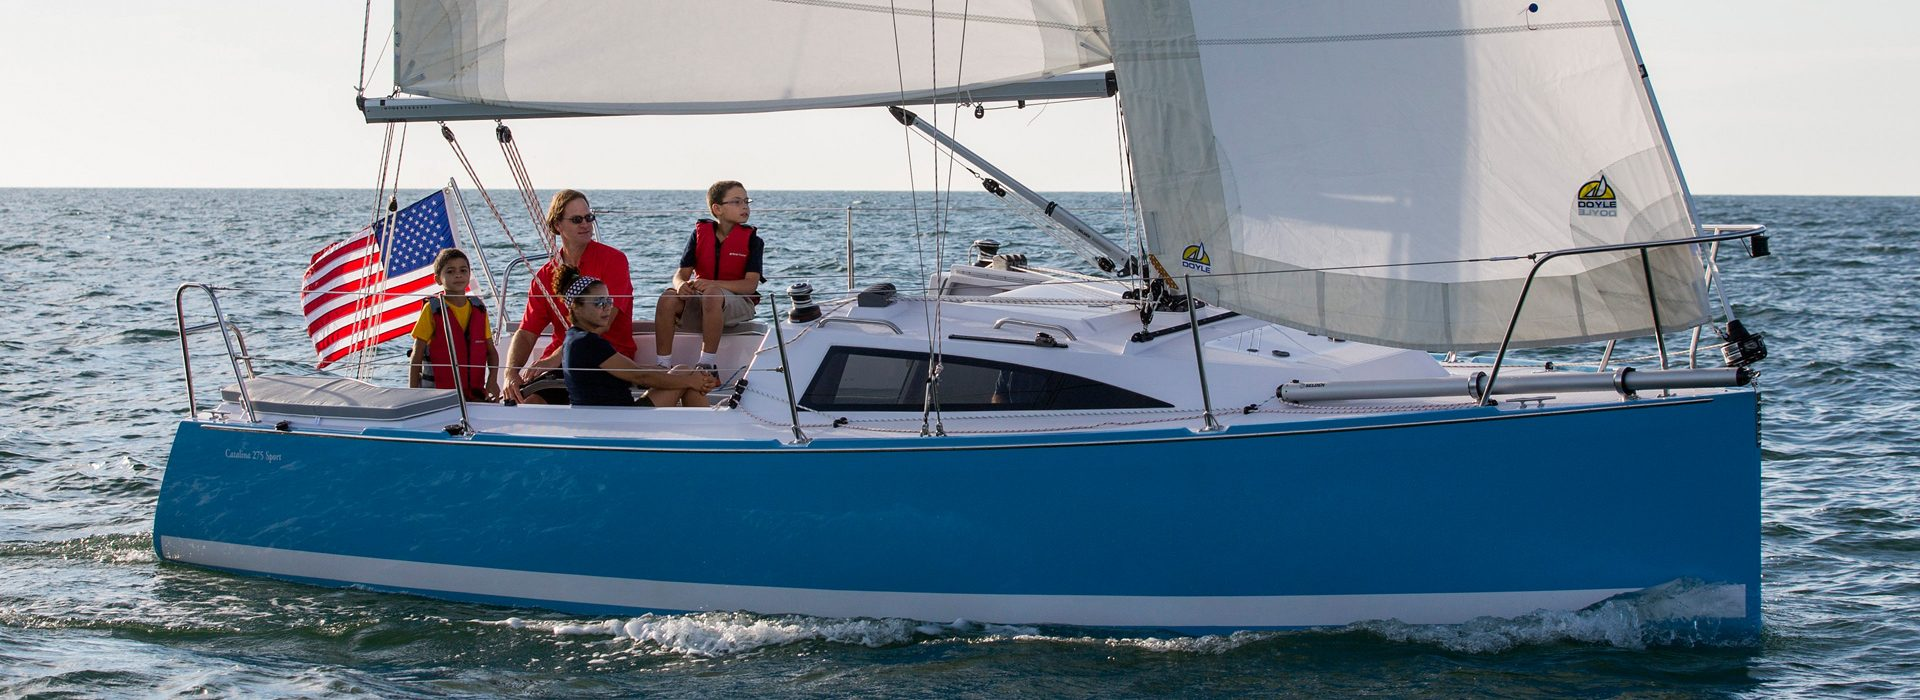 Family sailing on a catalina yacht